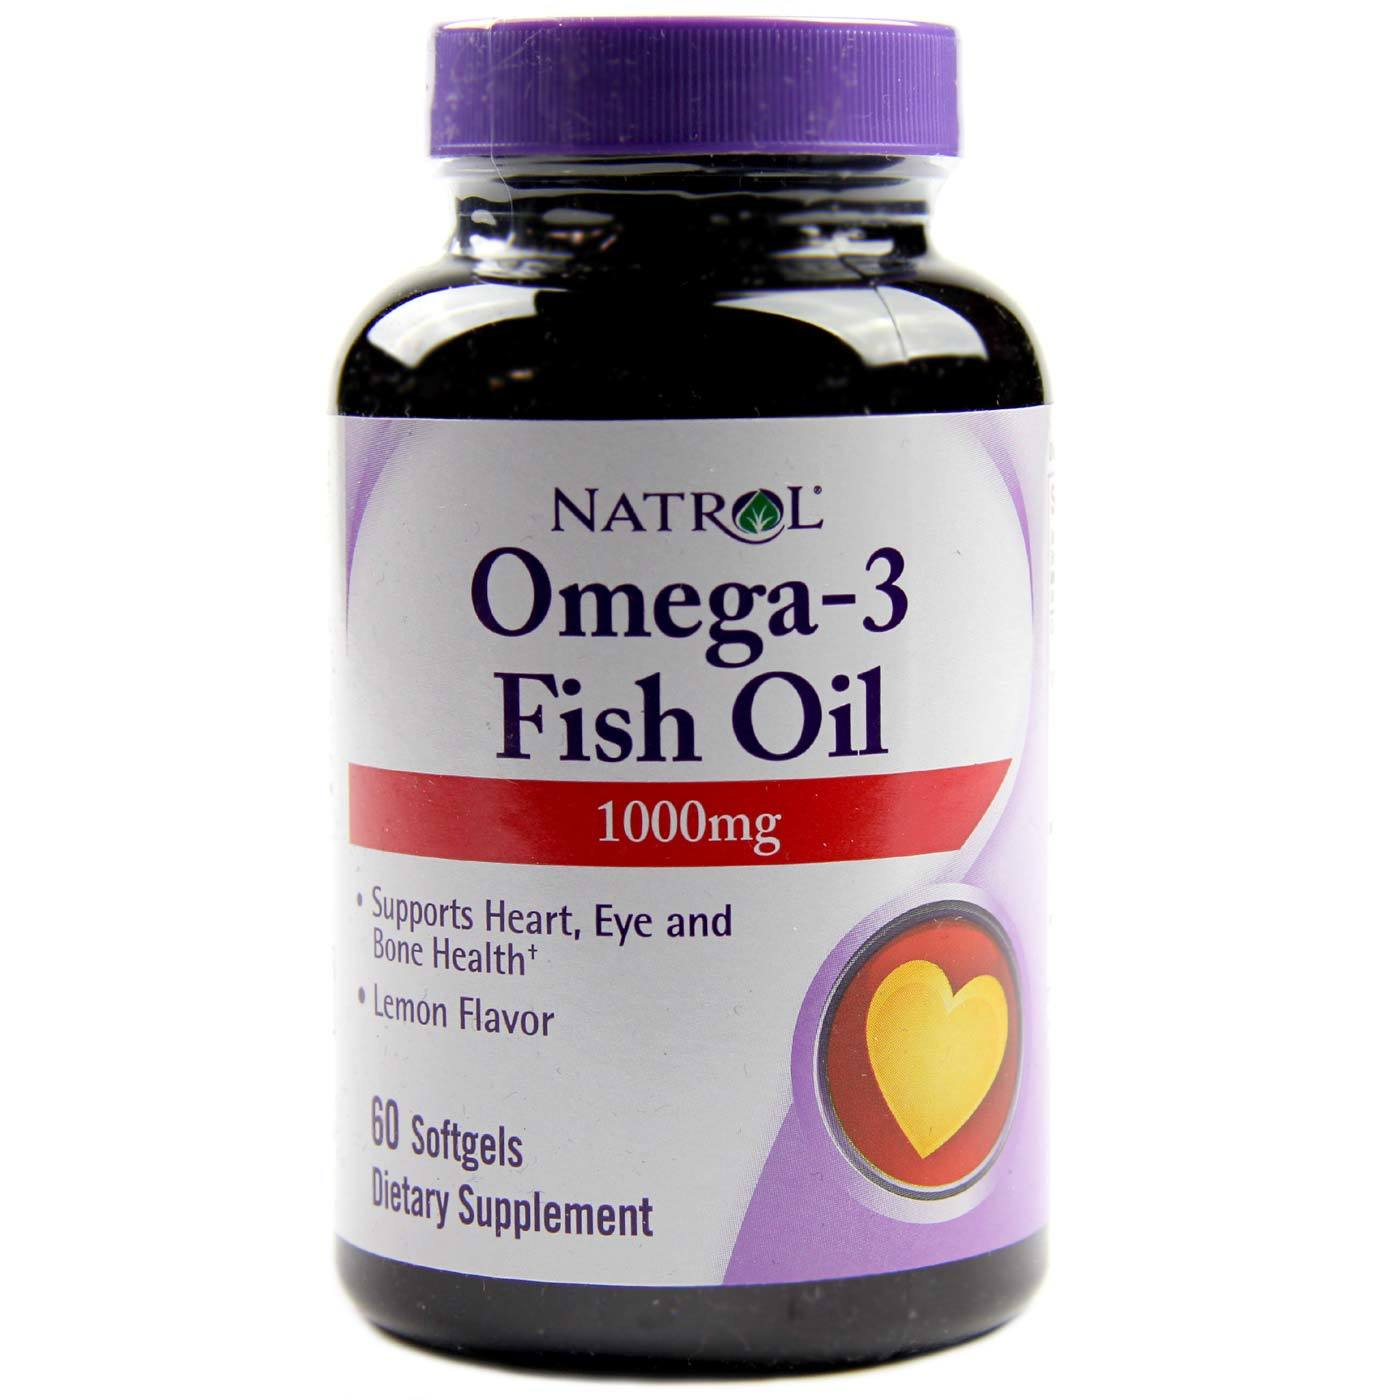 Natrol omega 3 fish oil lemon 1000 mg 60 softgels for Omega 3 fish oil reviews